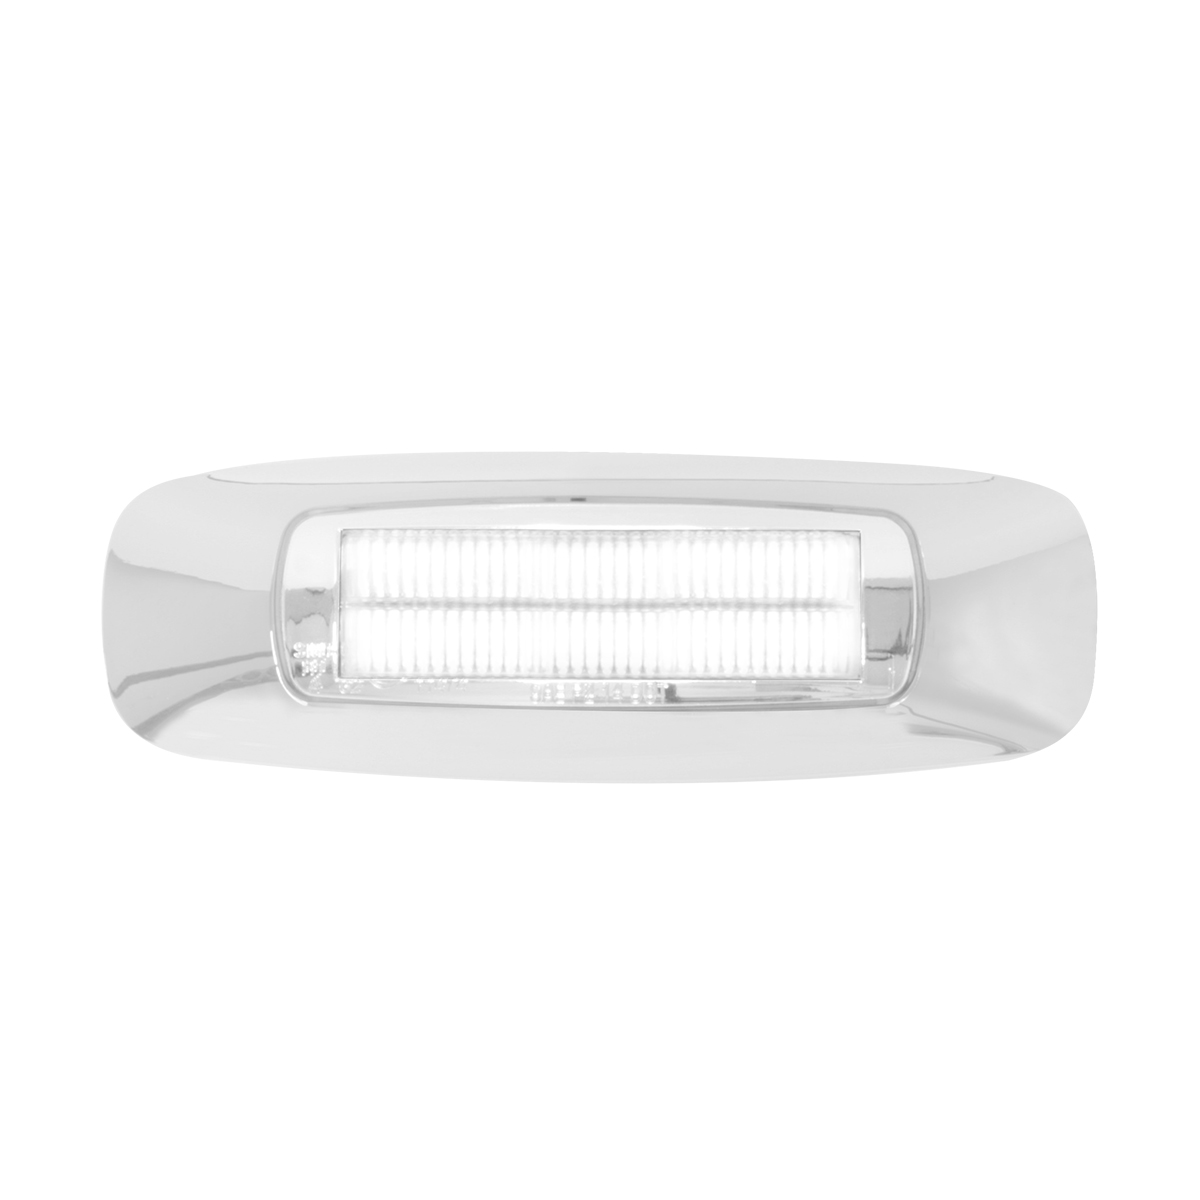 "74834 4-5/8"" Rectangular Prime LED Marker Light in White/Clear"